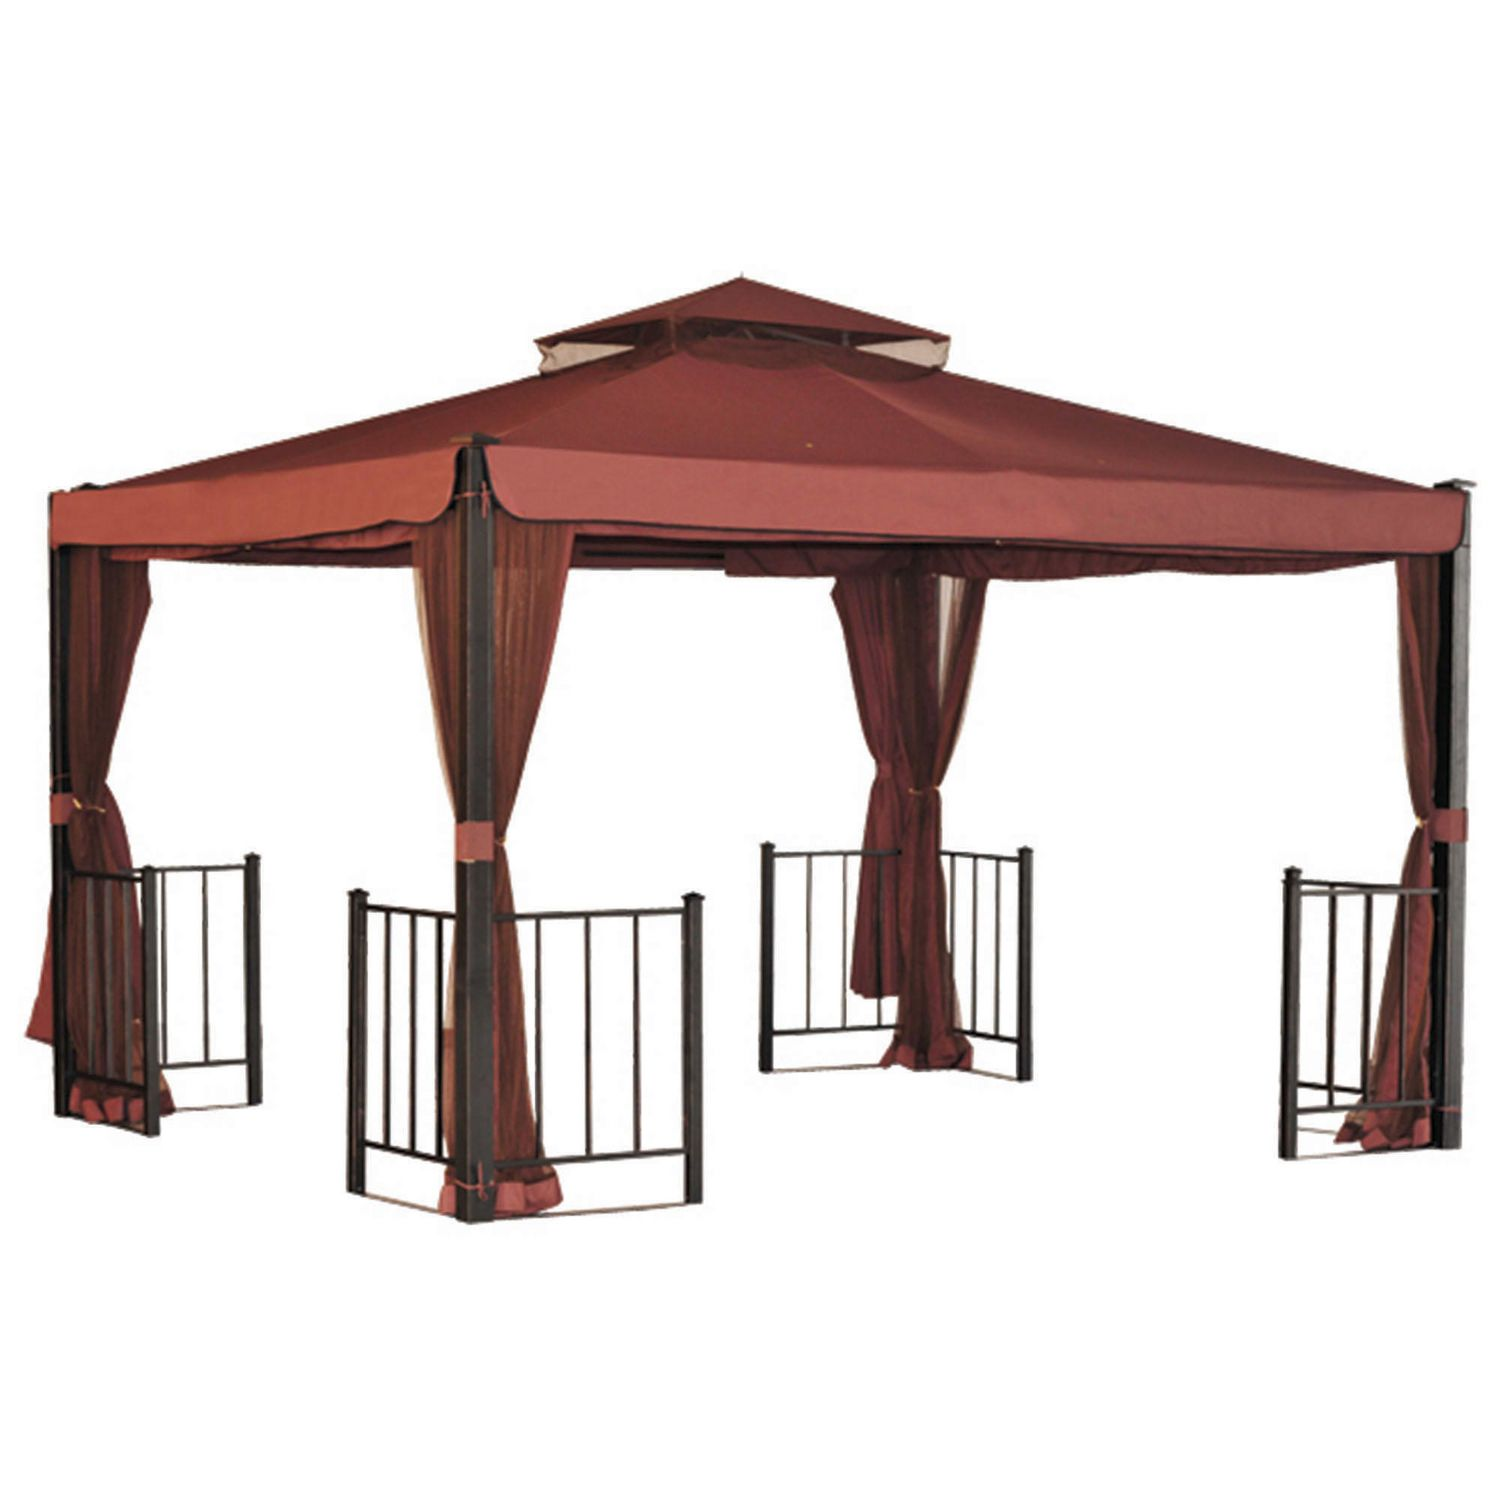 Creative sunjoy gazebo for garden ideas with sunjoy hardtop gazebo and sunjoy grill gazebo